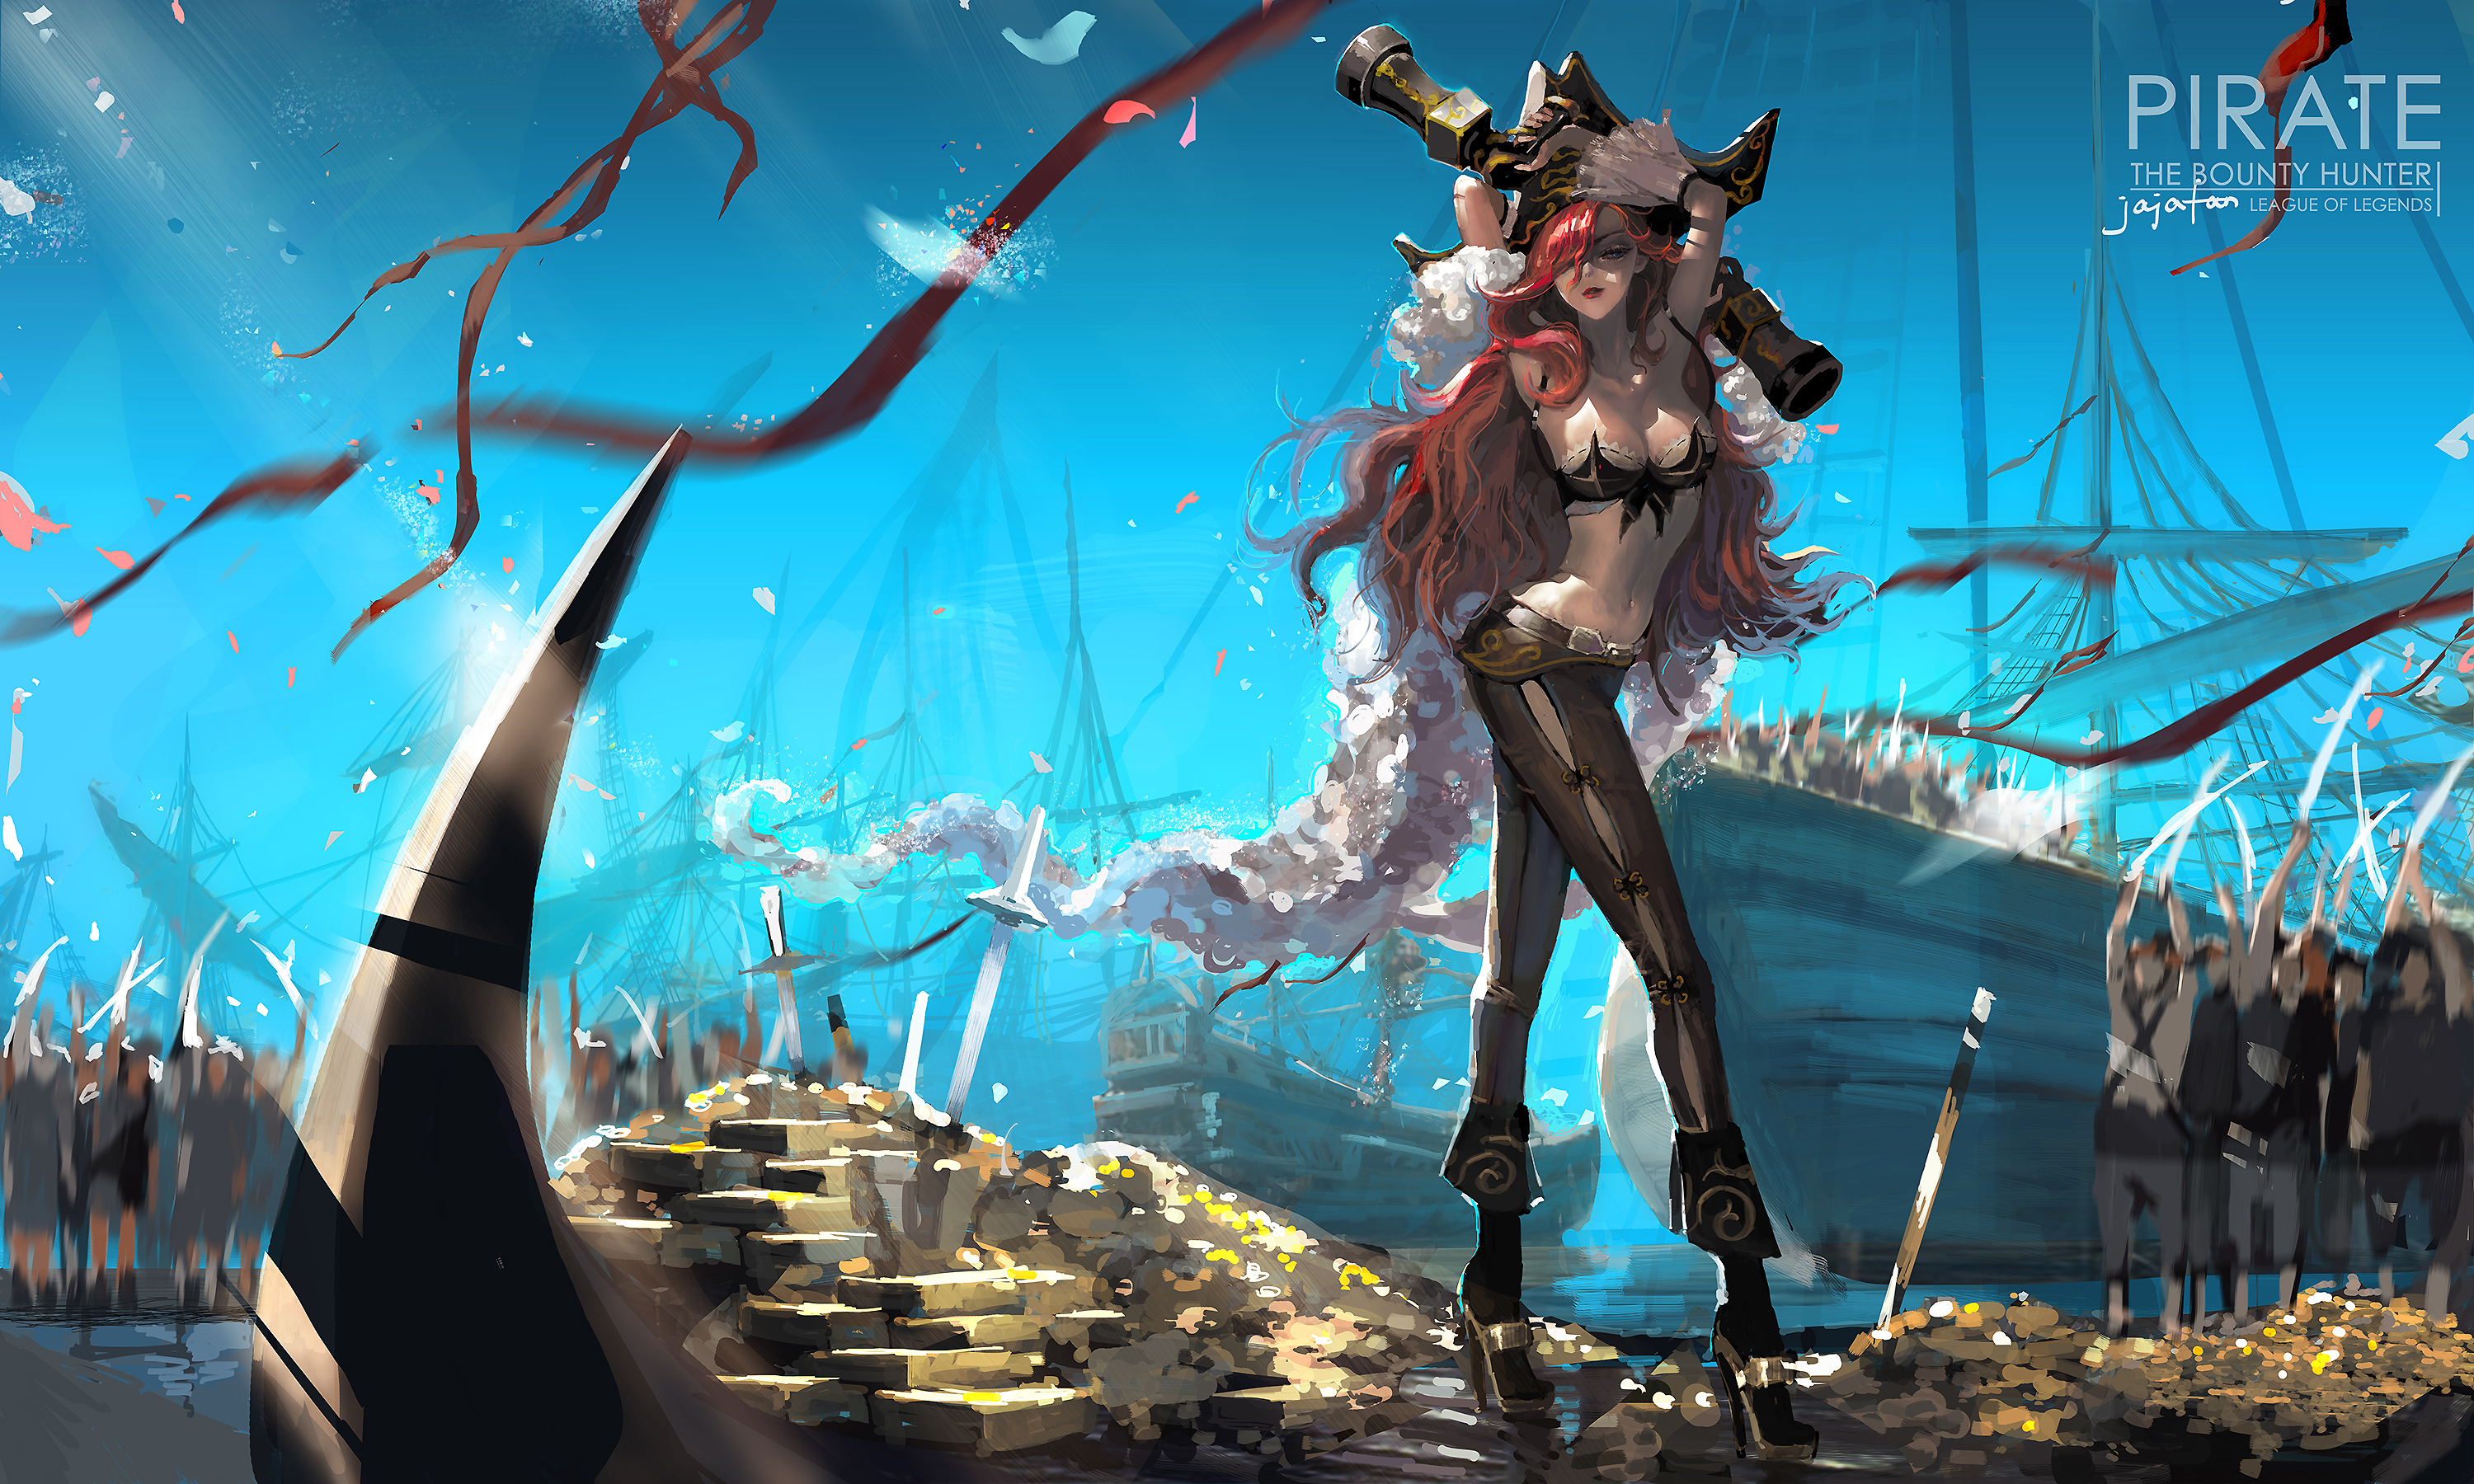 Miss Fortune Lolwallpapers